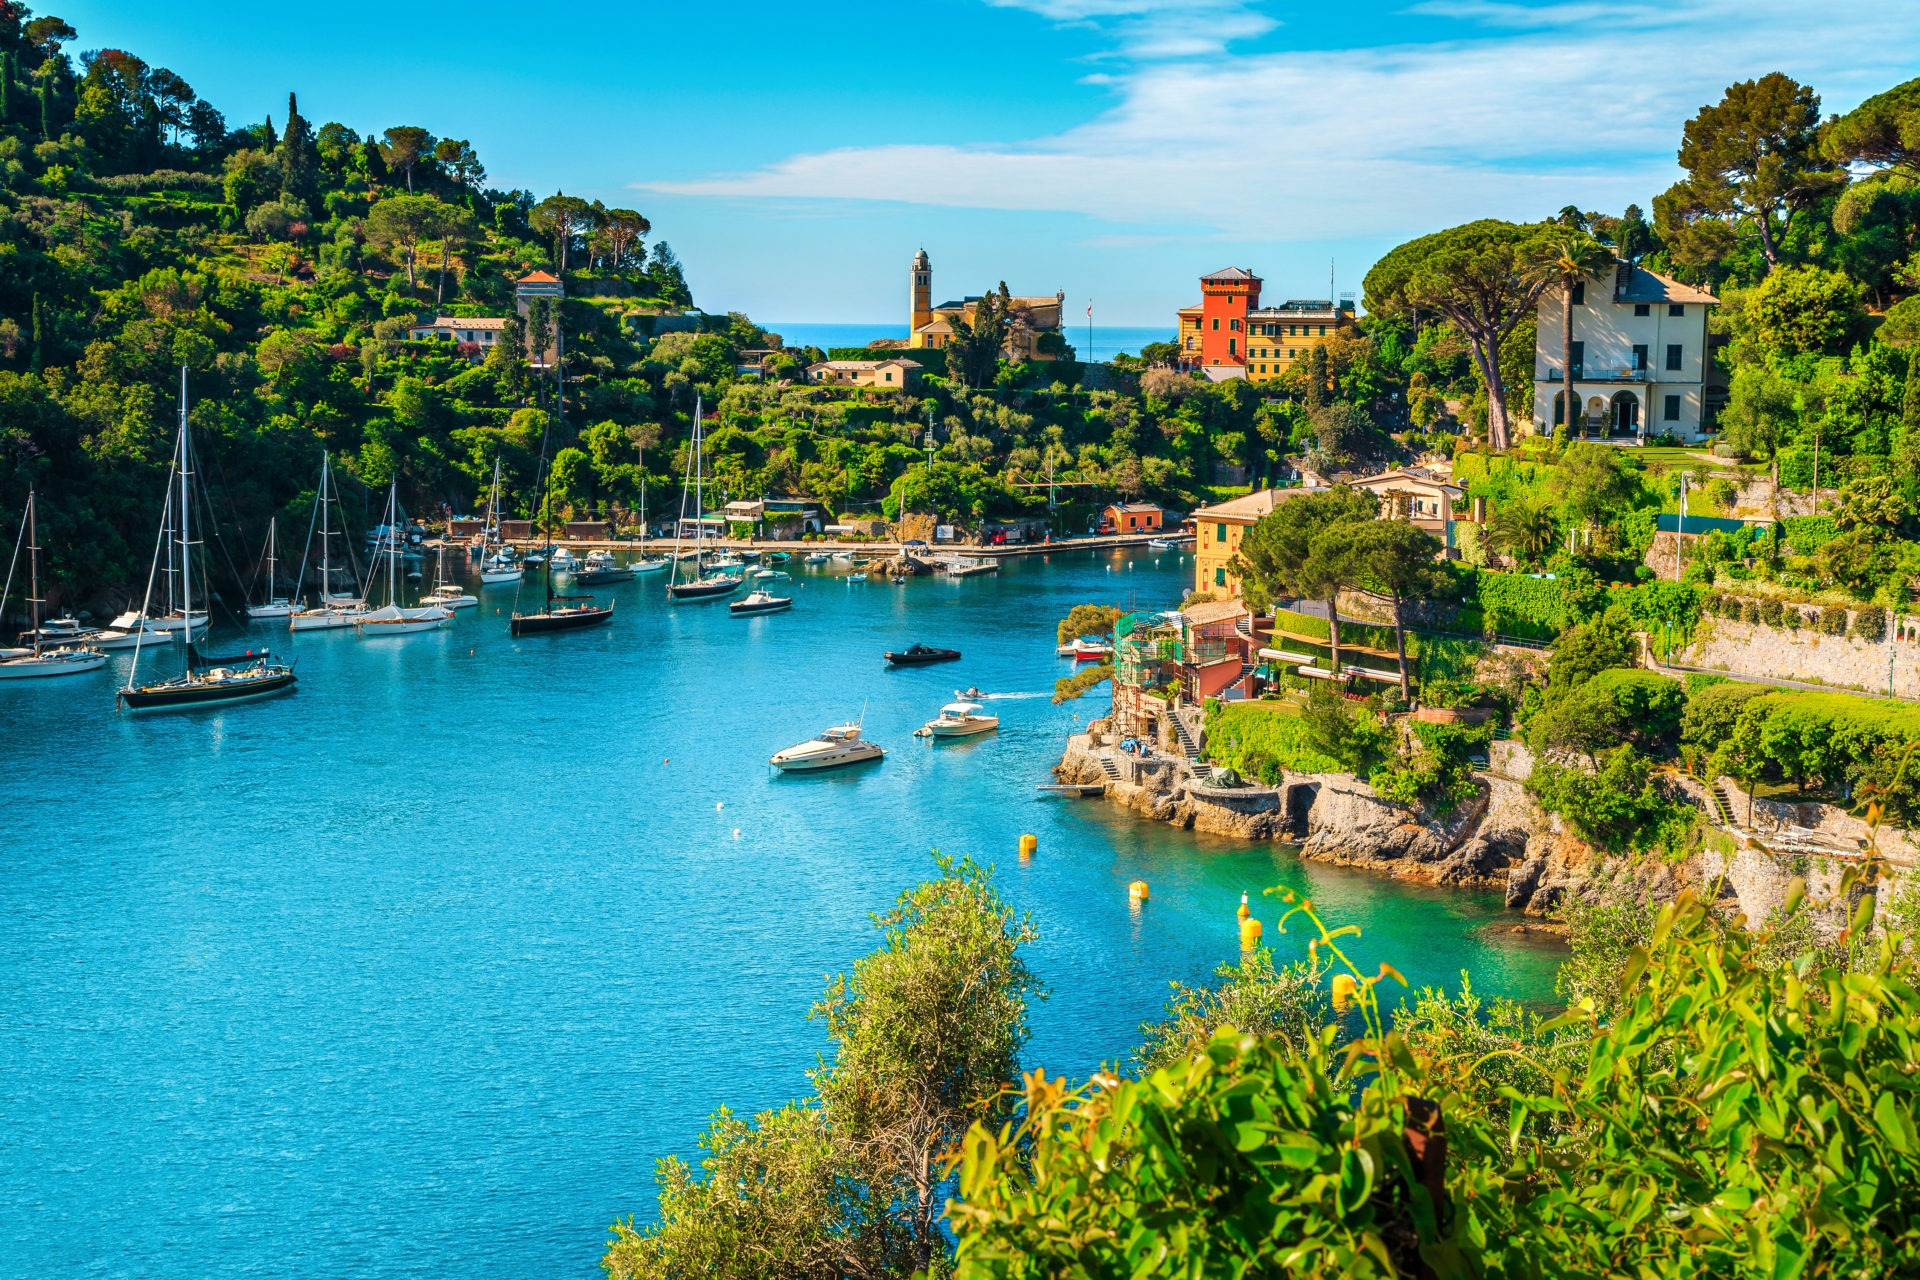 Vacation resort in Portofino, Liguria.